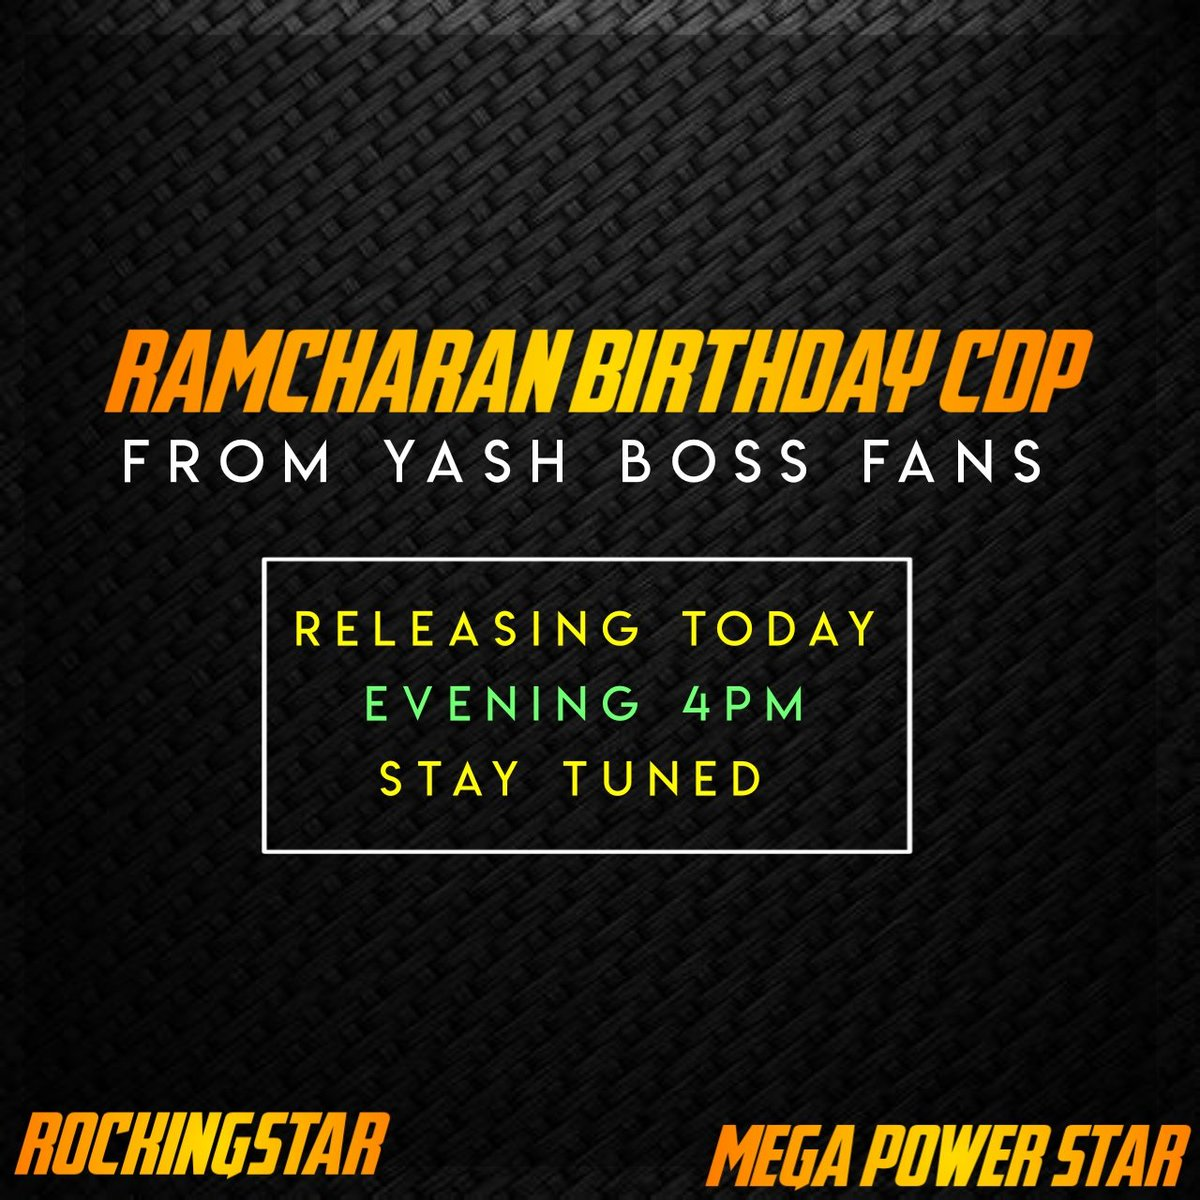 Sorry Guys Timings Changed  We Are Releasing Special CDP For #RamCharan Sir Bday💐🎂 Stay Tuned Get Ready For Change Ur Dp's 🎉😉